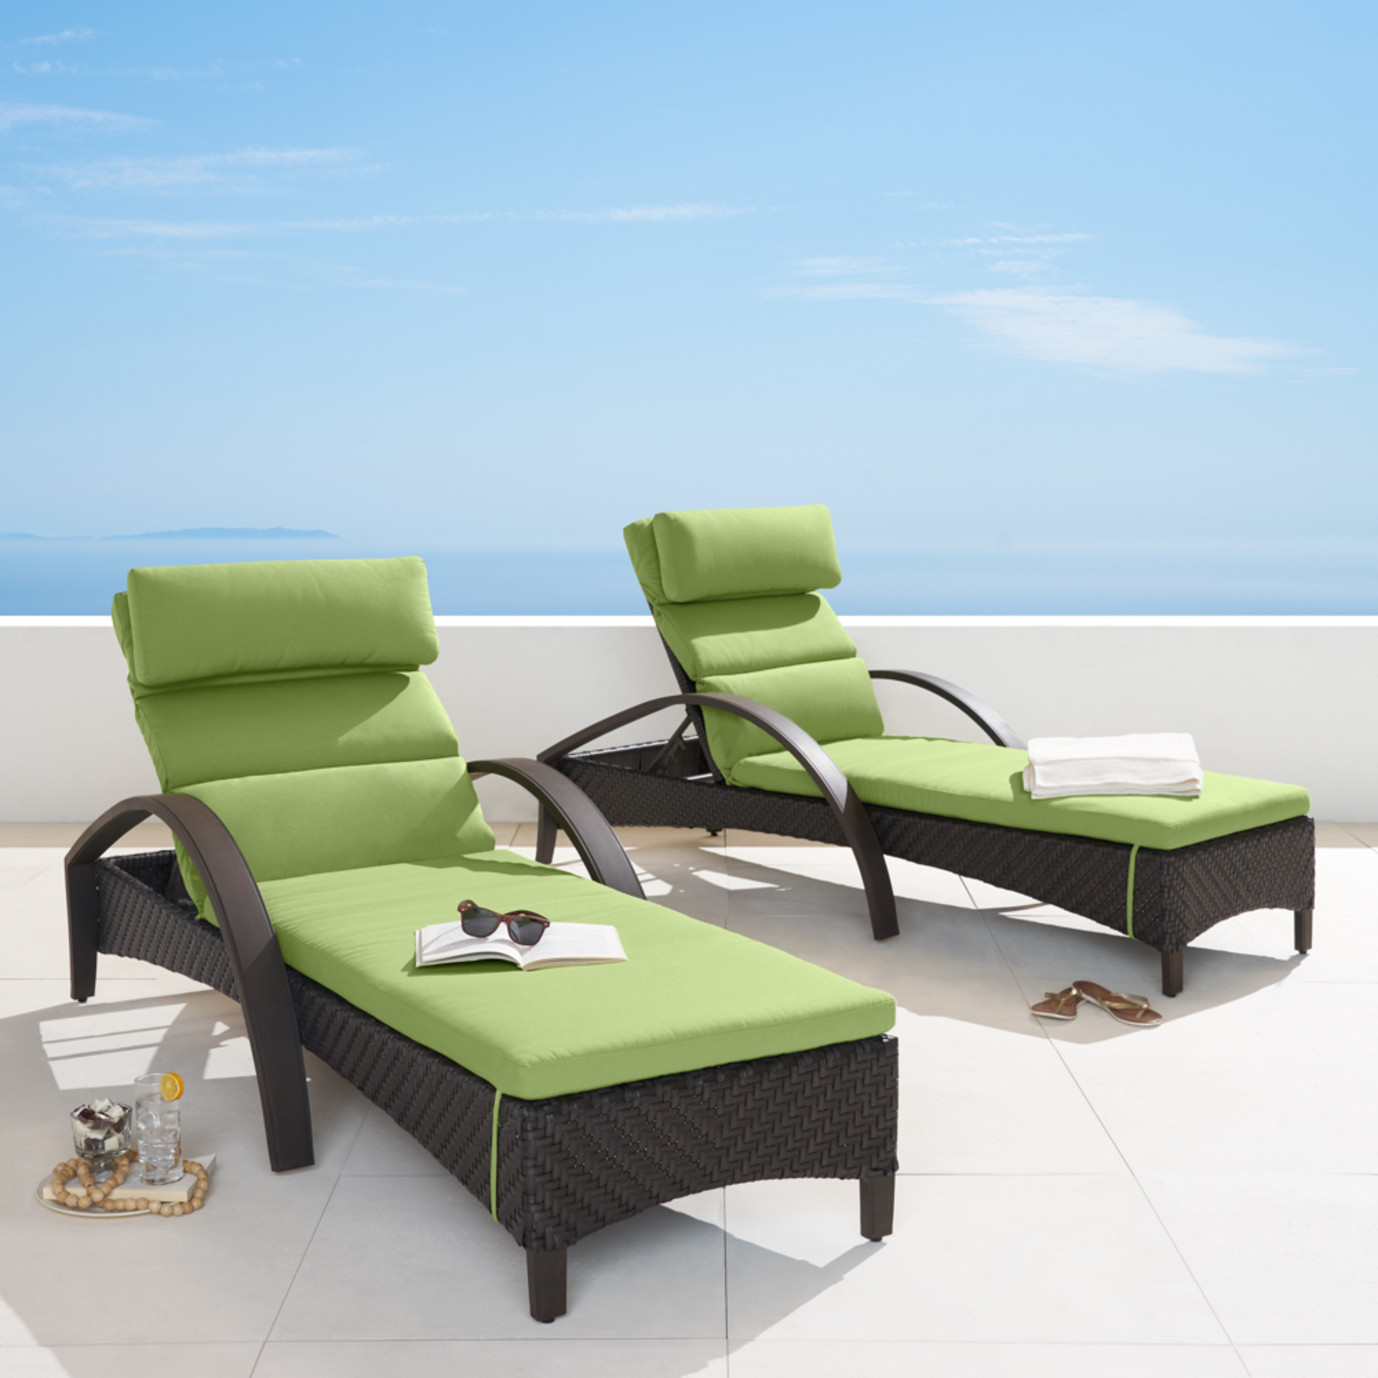 Barcelo™ Chaise Lounge 2pk - Ginkgo Green